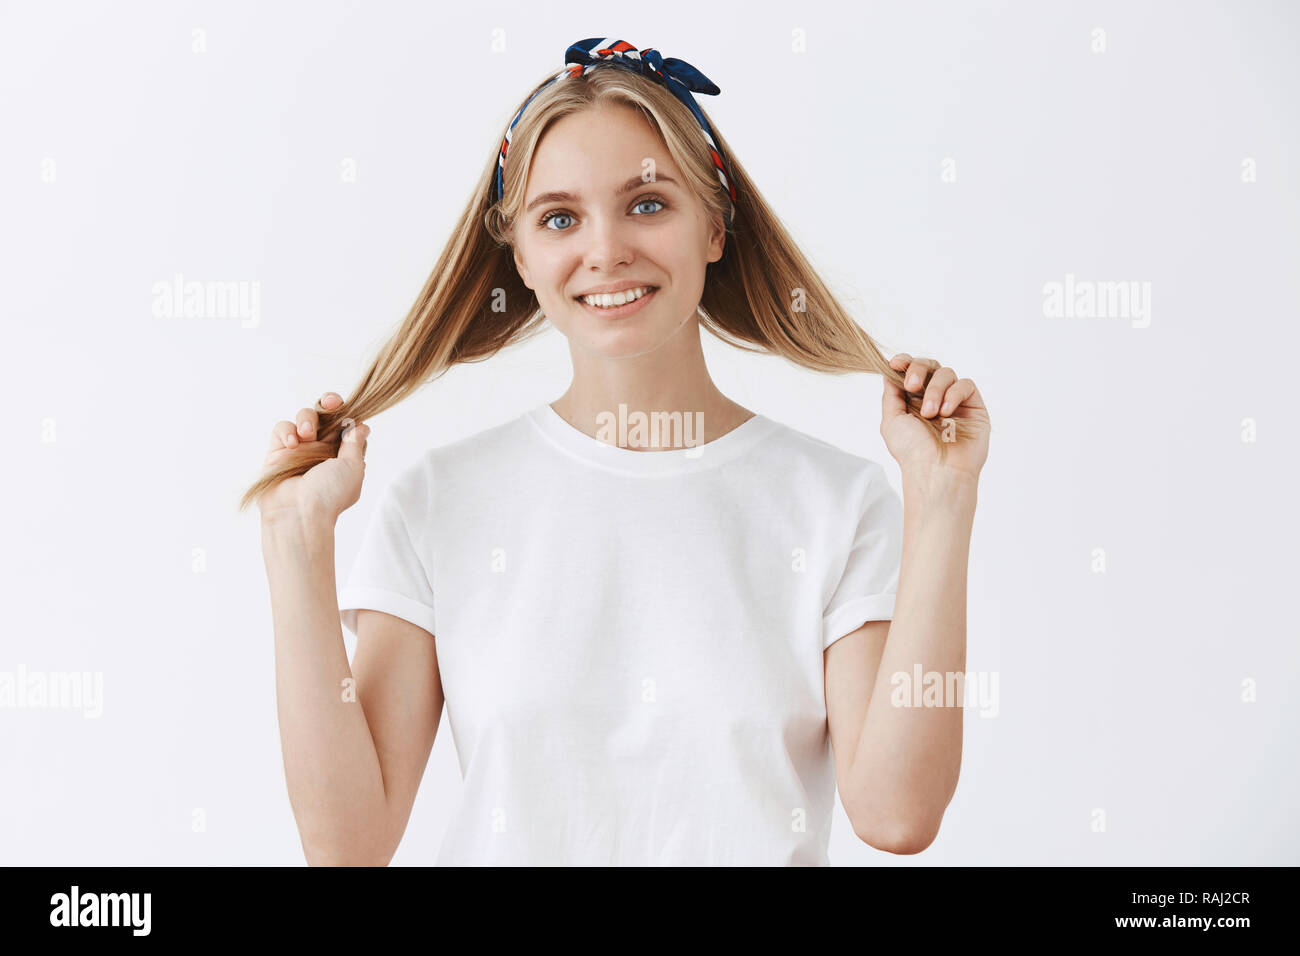 Happy attractive and emotive blond woman in headband and white t-shirt pulling hair strands with hands and smiling joyfully looking in mirror, thinking about visiting hairdresser and change haircut - Stock Image